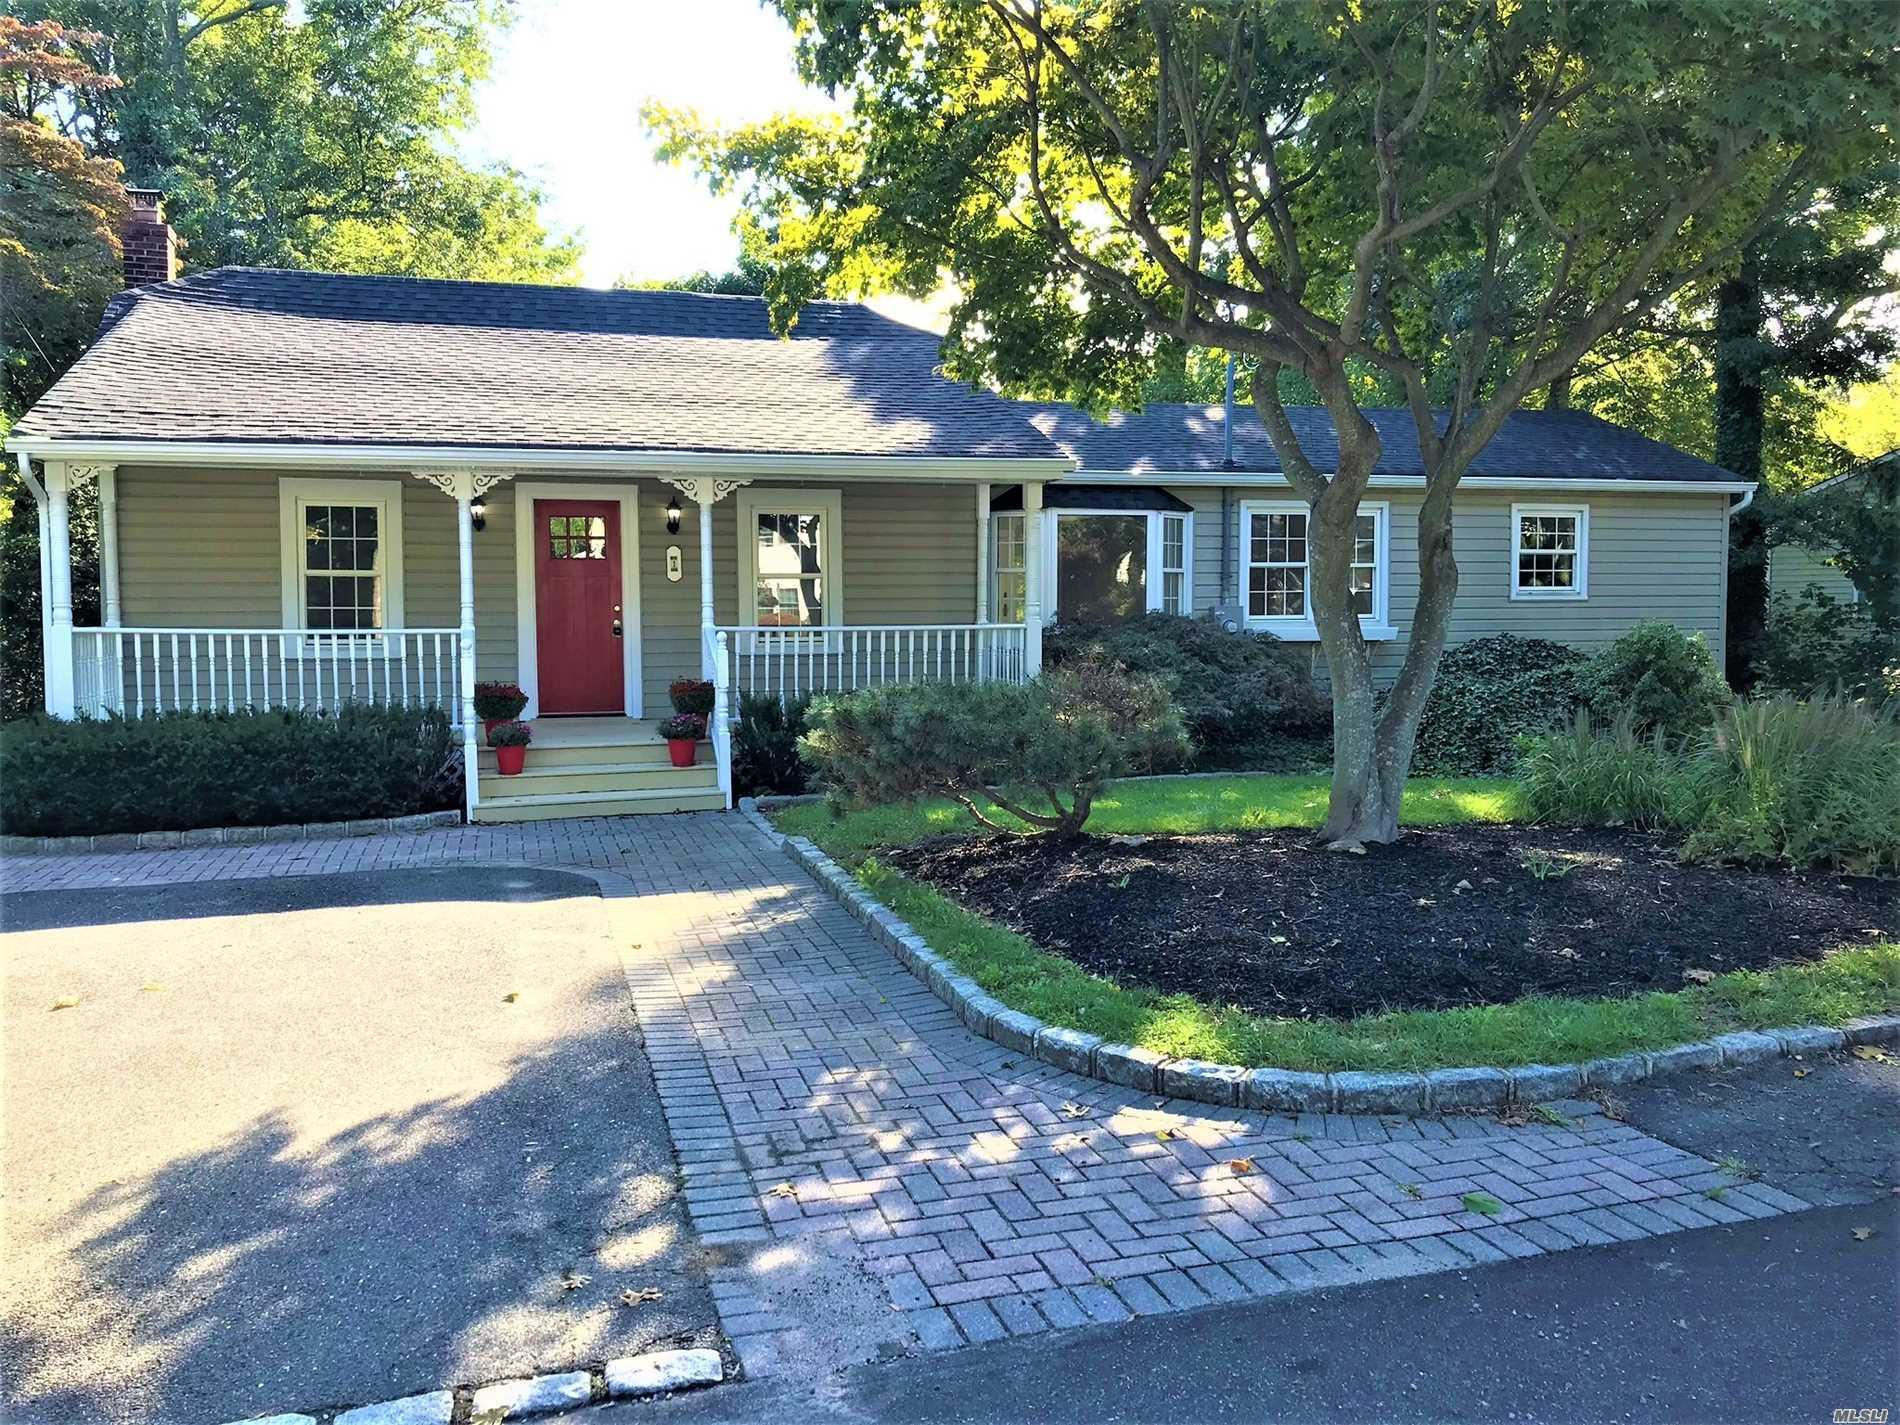 This Ranch Is A Must See!! Boasting A New 30Yr Roof, New #1Oak Flooring Throughout, Custom Tile Work In The Bathrooms, New Custom Self Closing Kitchen Cabinets, Custom Farrow And Ball & Benjamin Moore Paint Color! Honed Black Granite Counter Tops, Custom Herring Bone Back Splash Accent The Beautiful Brand New Stainless Steel Appliances And Porcelain Tile Make This A Dream Kitchen! New 200 Amp Service And Mature Landscaping , Anderson French Doors, And A Beautiful Front Porch! A Must See!! Low Taxes!